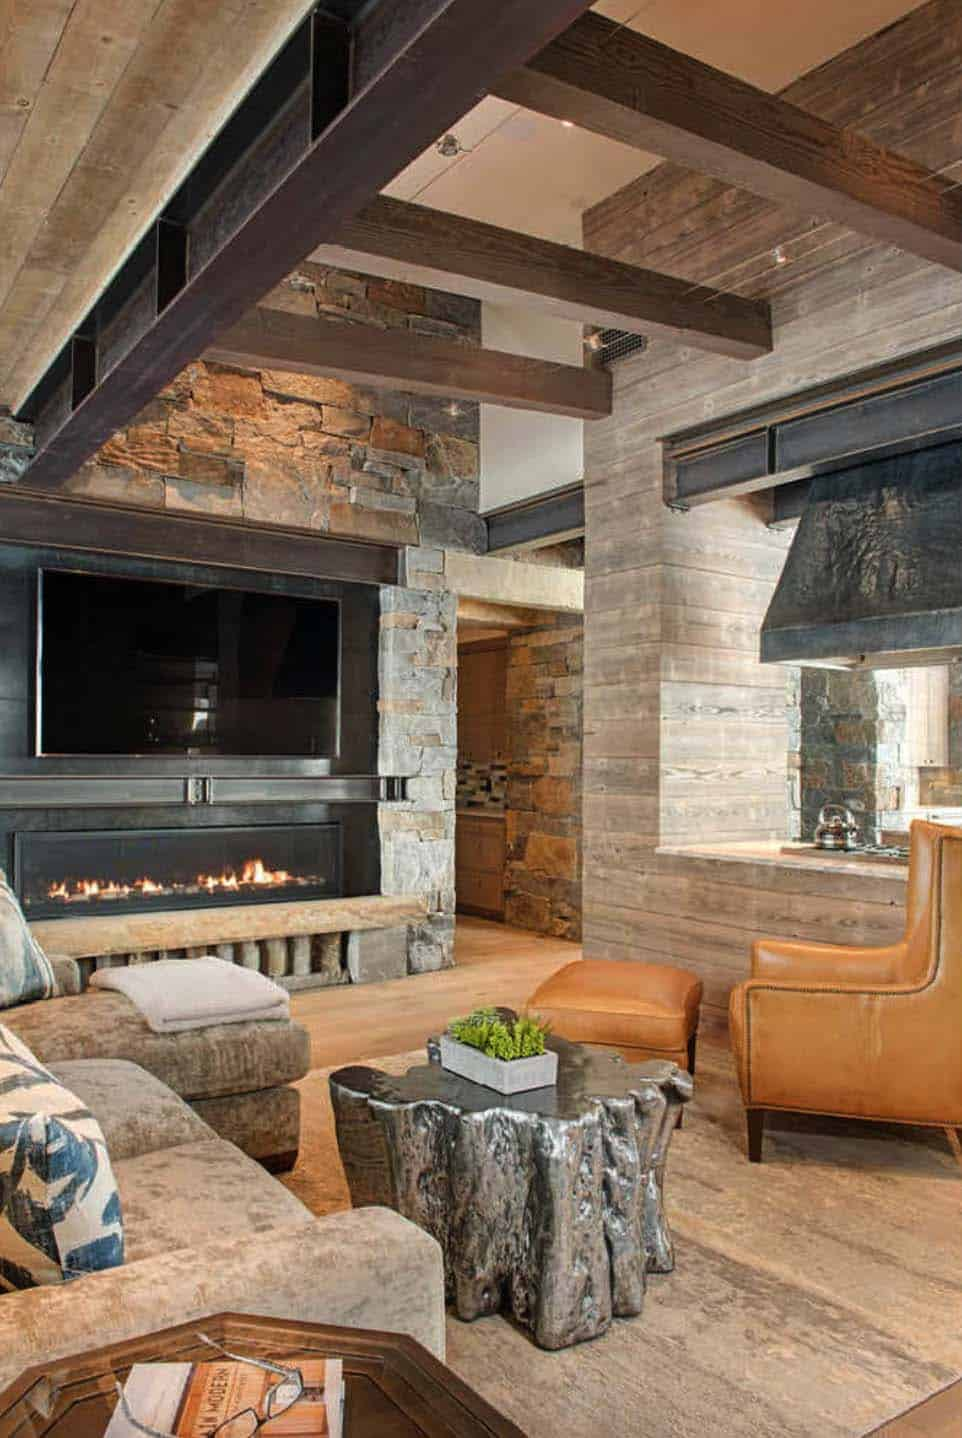 Modern Rustic Mountain Home With Spectacular Views In Big